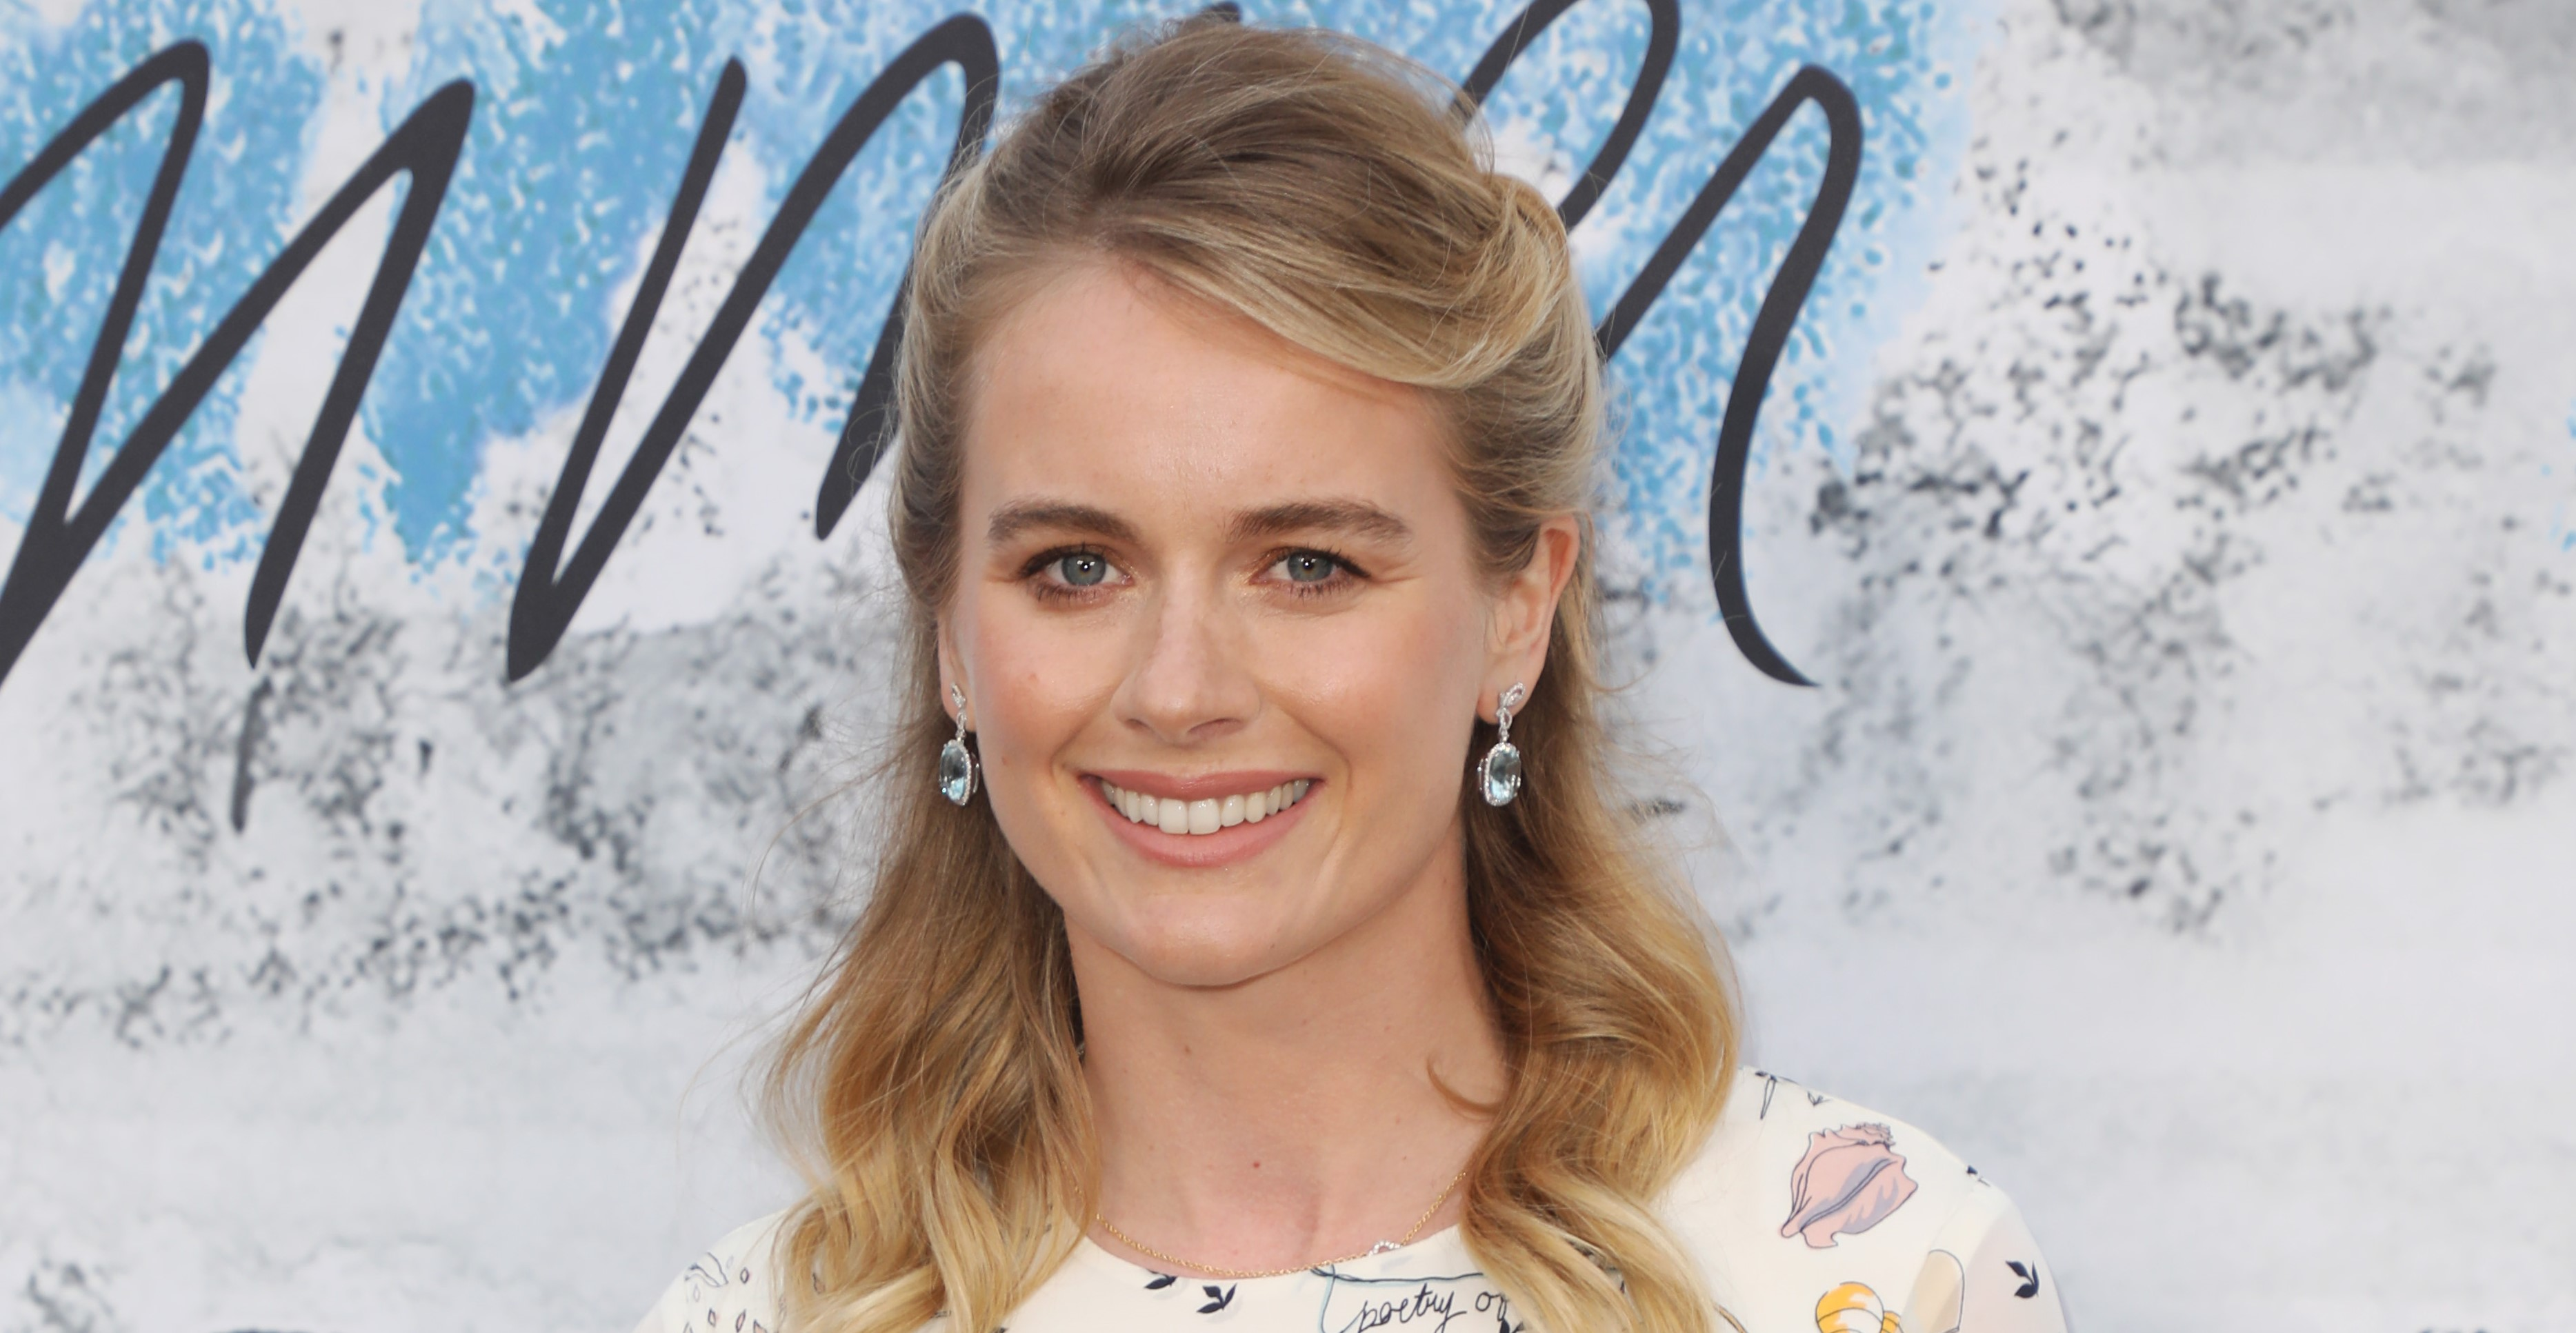 Prince Harry's Ex Cressida Bonas Engaged To Her Real-Life Prince Charming!